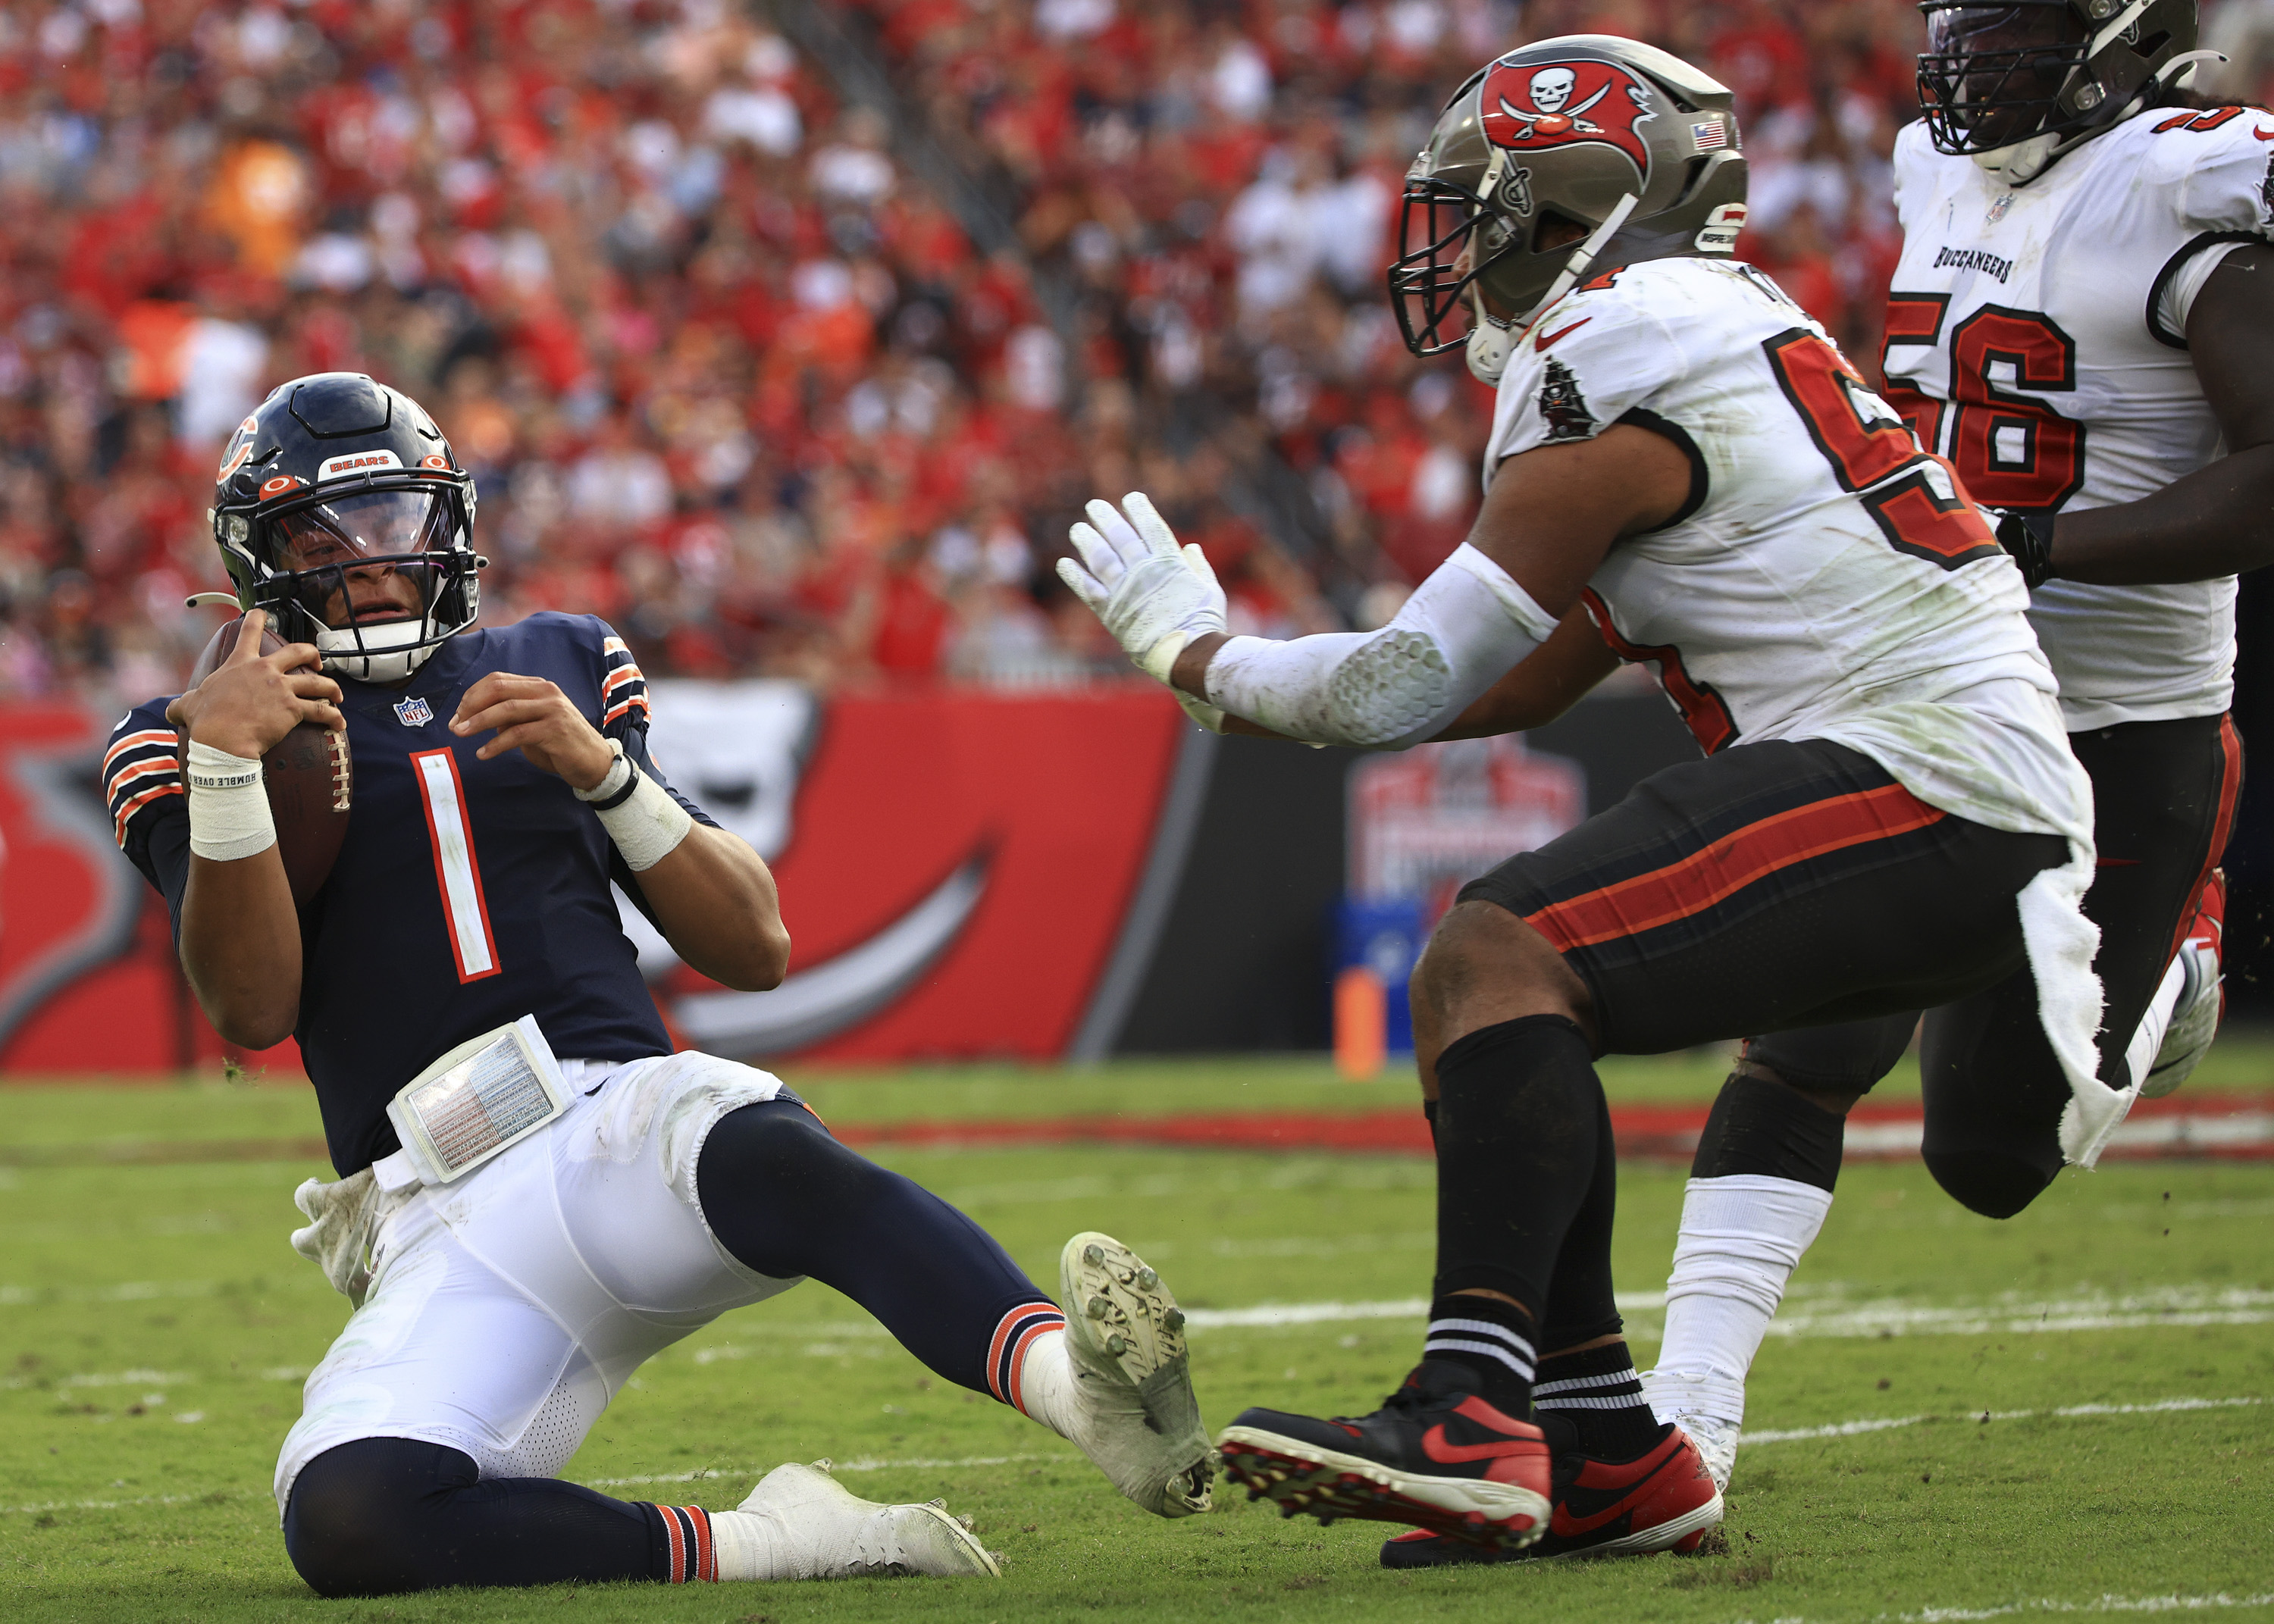 Quarterback Justin Fields slides with the ball in the second quarter of the Bears' 38-3 loss to Tampa Bay.